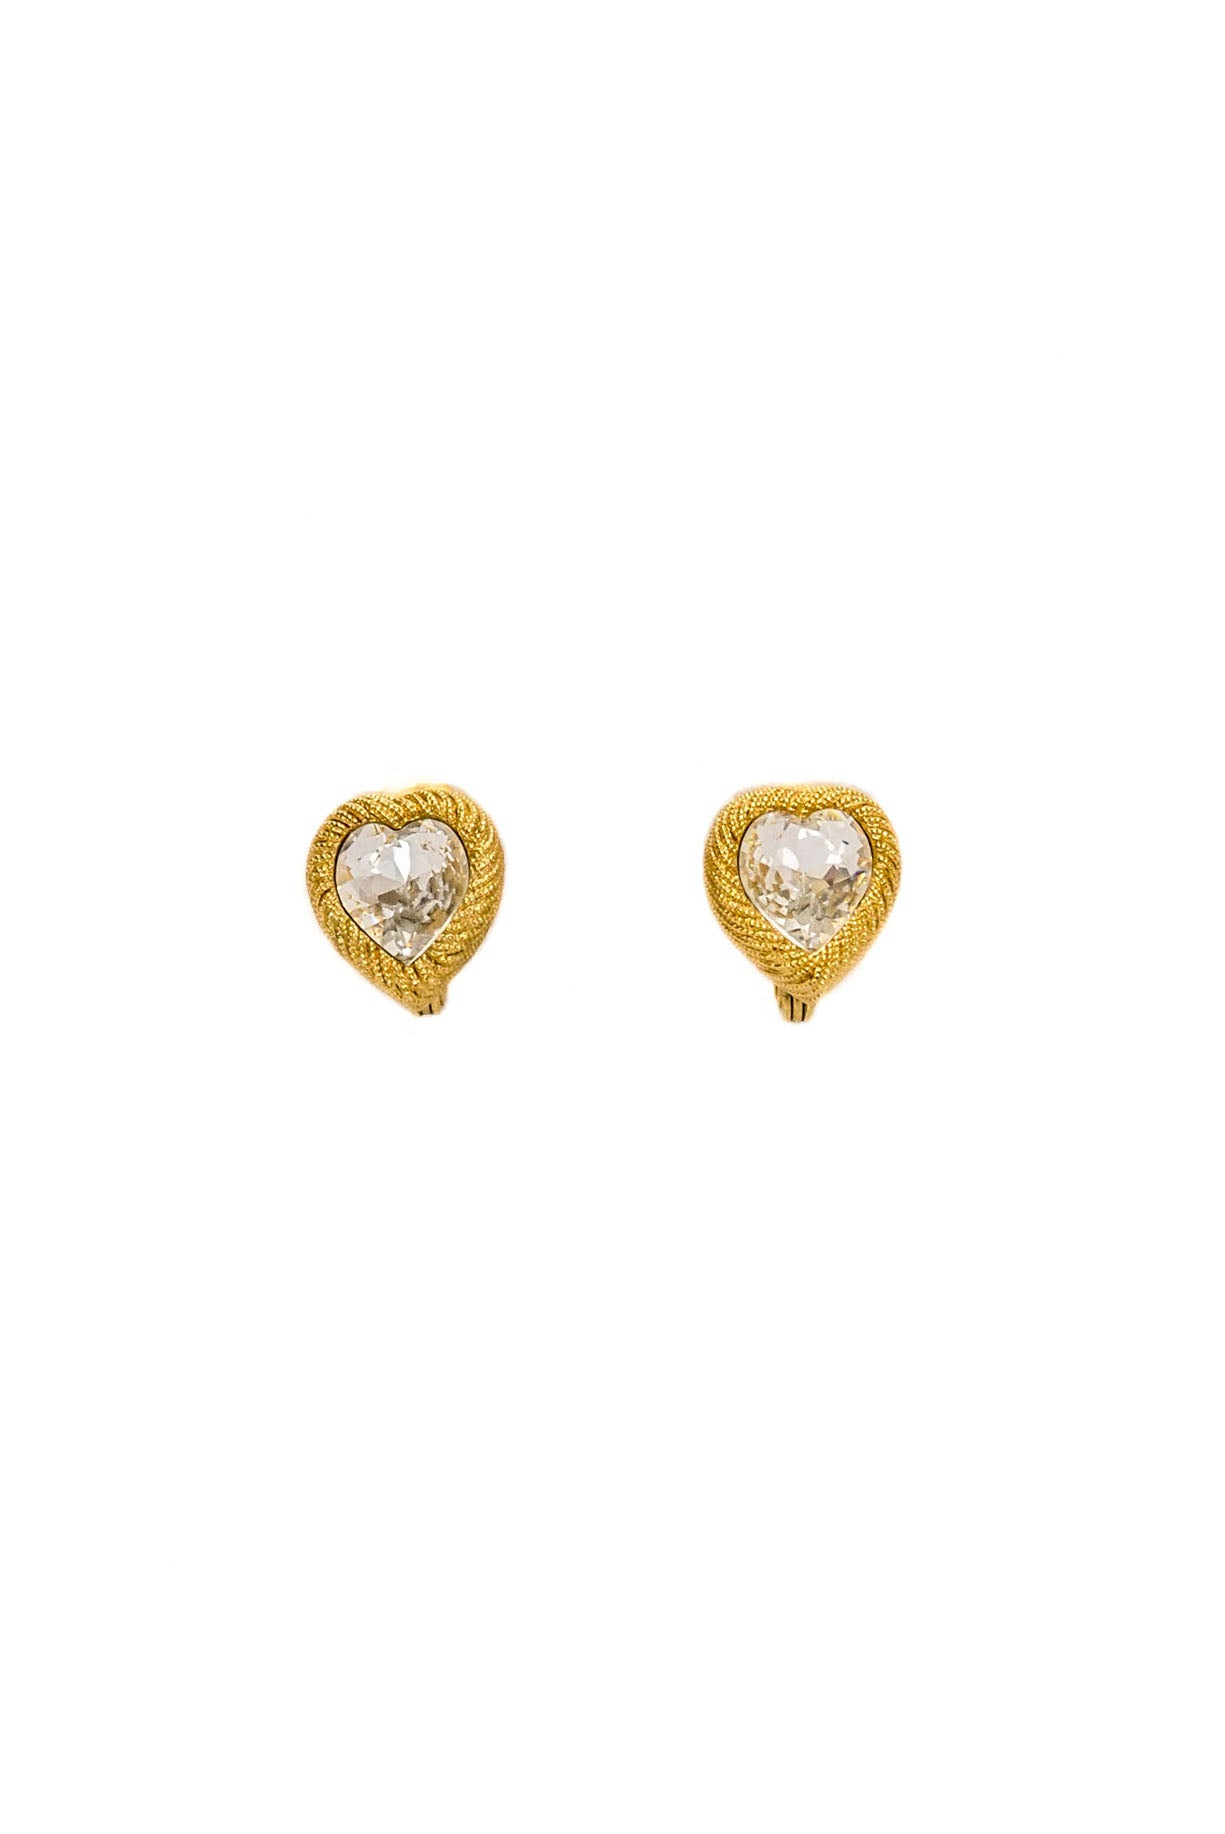 Vintage Monet Heart Clip-on Earrings from Sweet & Spark.